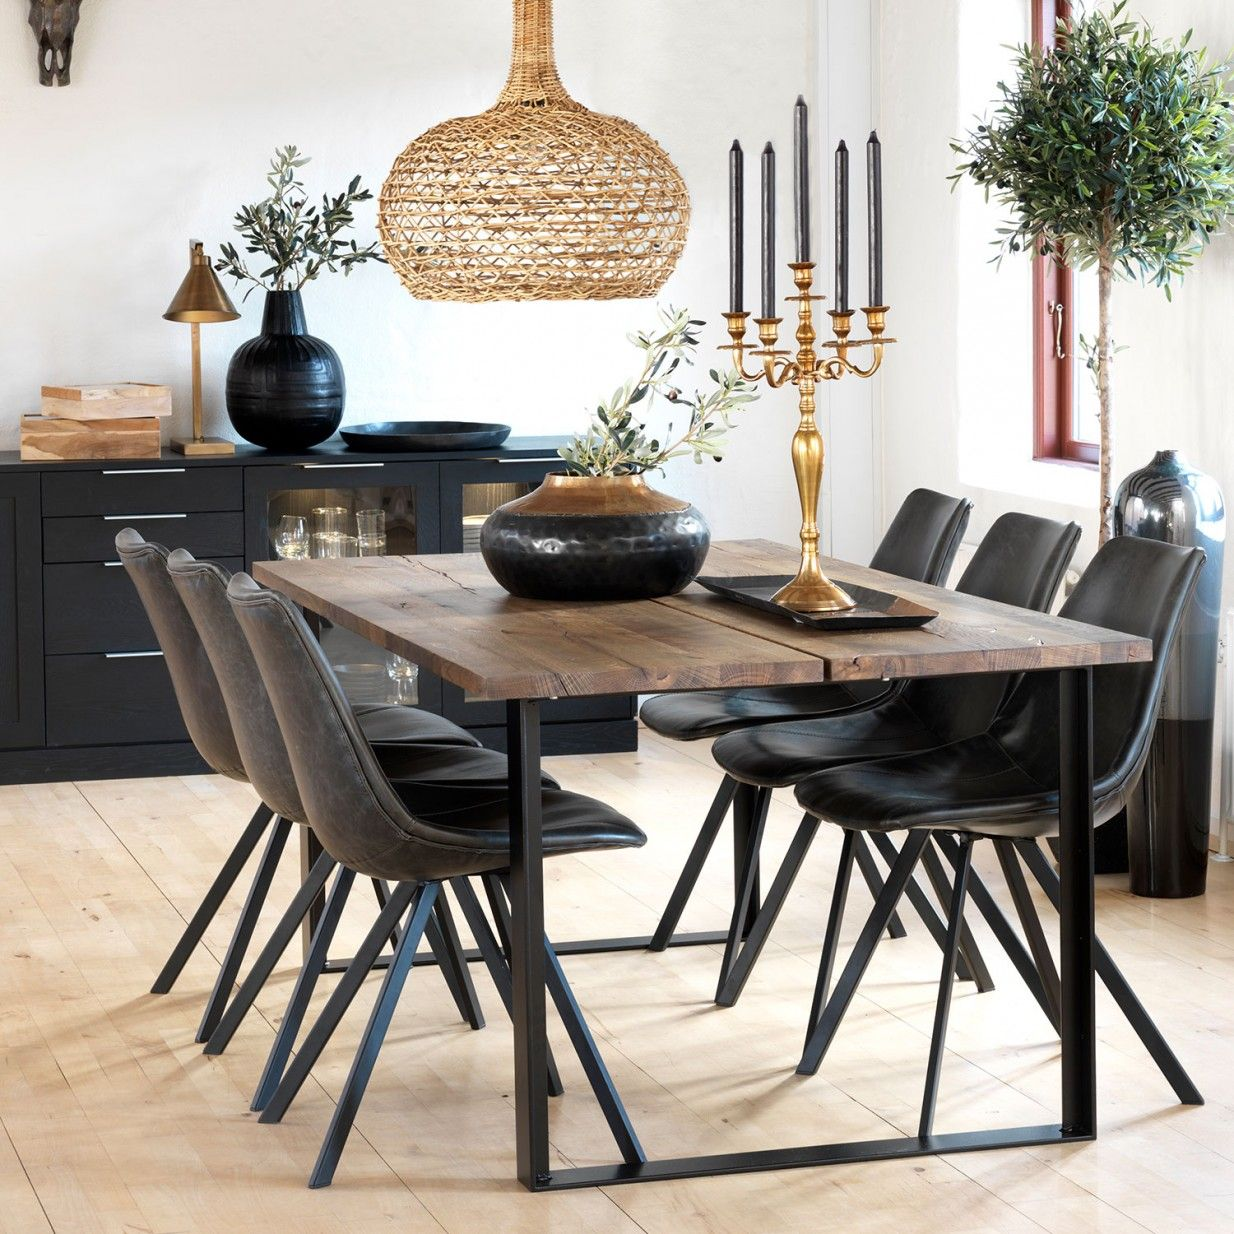 Vermont Table Canett Furniture Decor Space Decor Dining Table